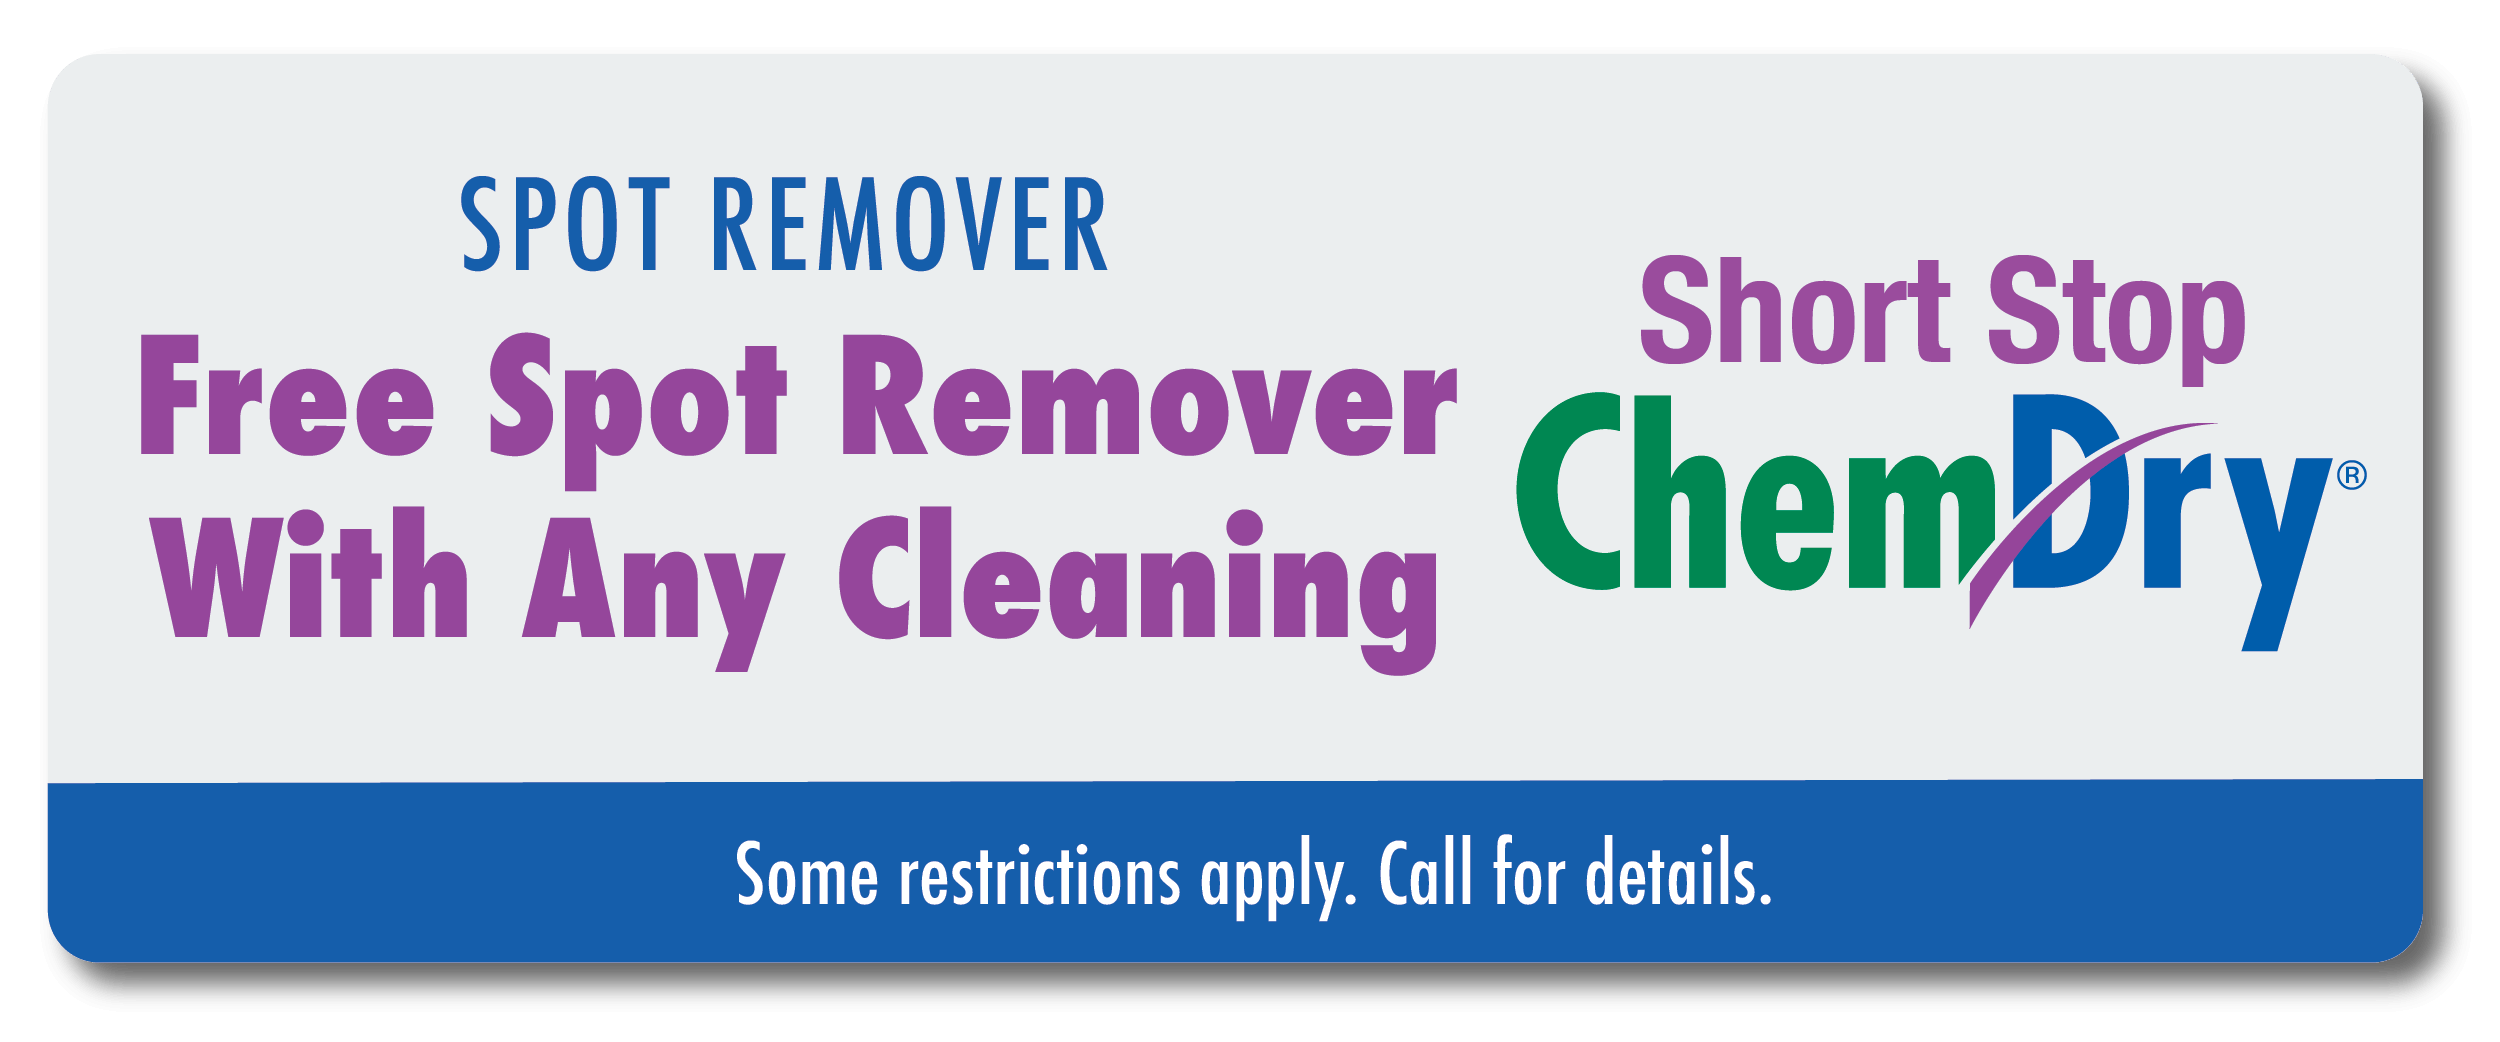 free spot remover with any cleaning coupon